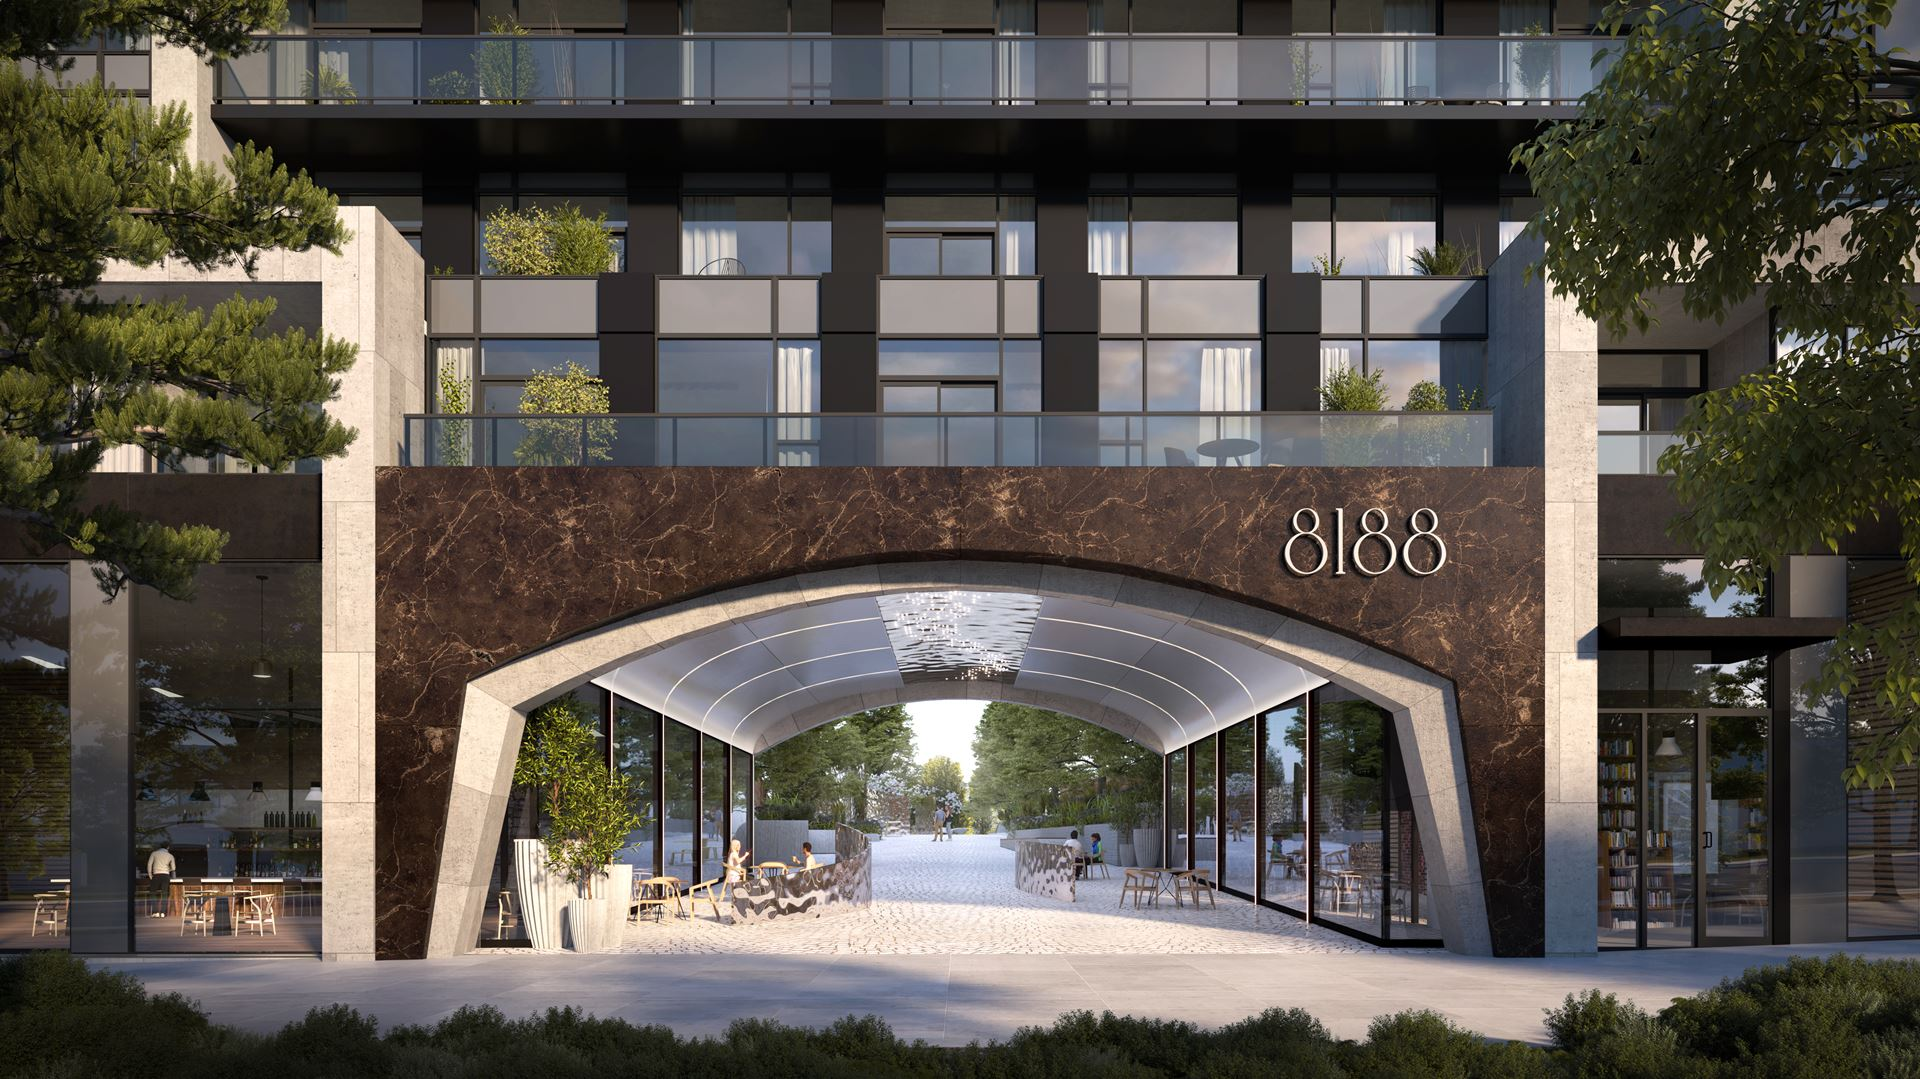 Rendering of 8188 Yonge Condos pedestrian walkway and condo entrance.